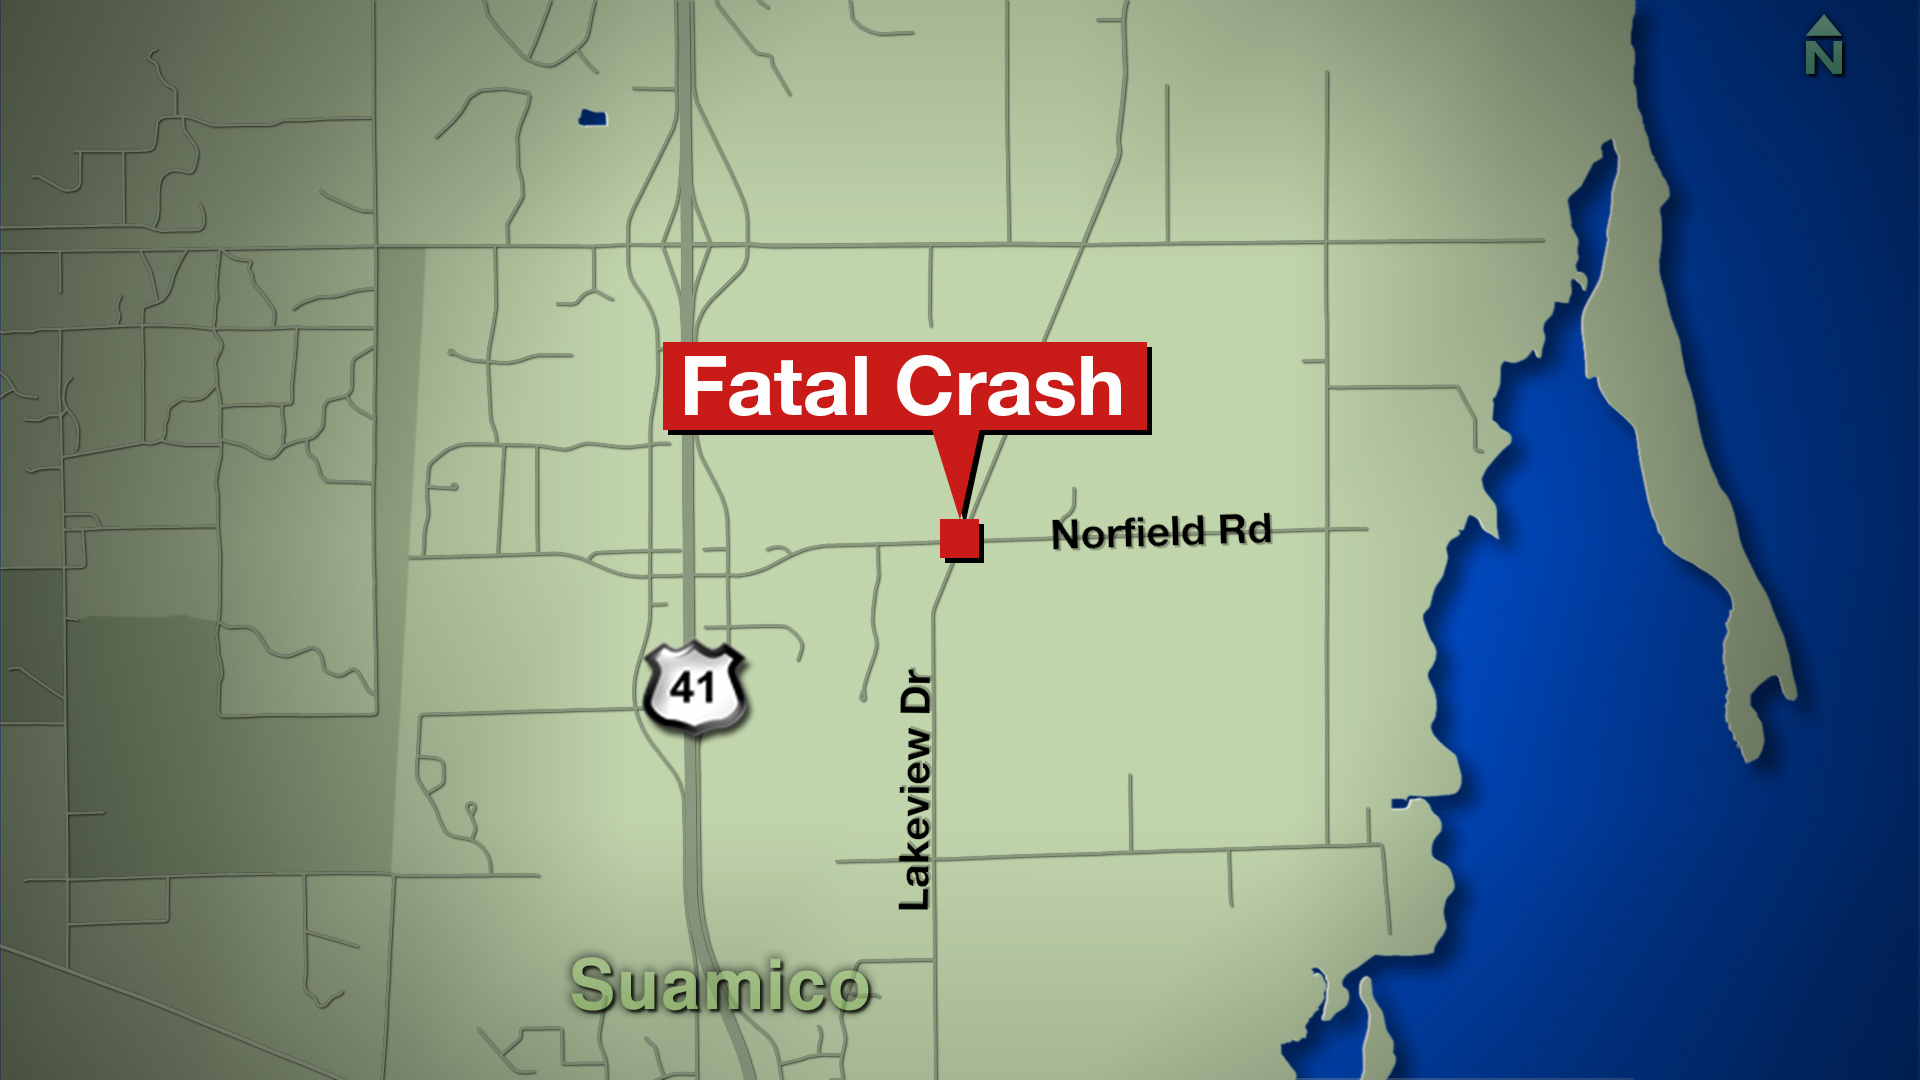 Fatal crash in Suamico on Lakeview Drive 4-20-17